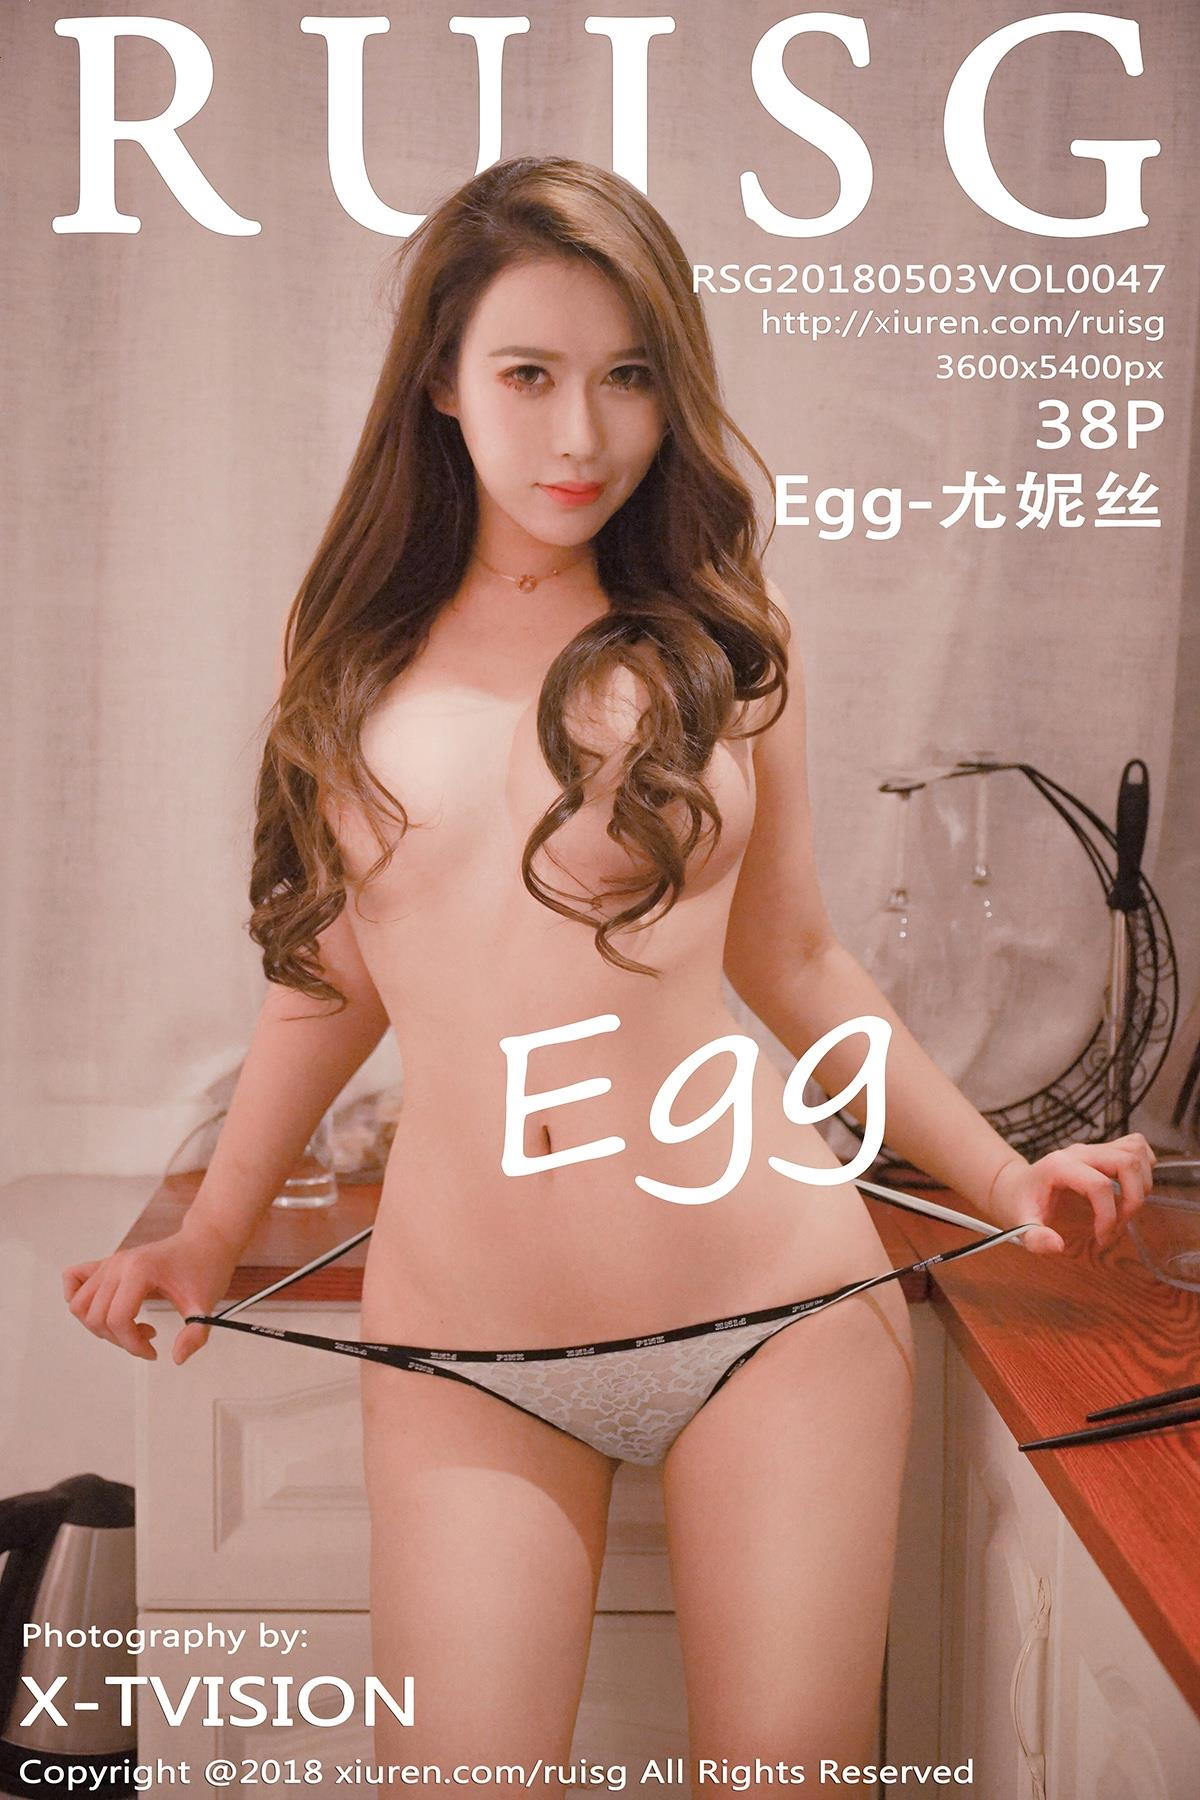 [RUISG瑞丝馆]RSG20180503VOL0047 Egg-尤妮丝 半裸性感玉体大尺度私房写真集